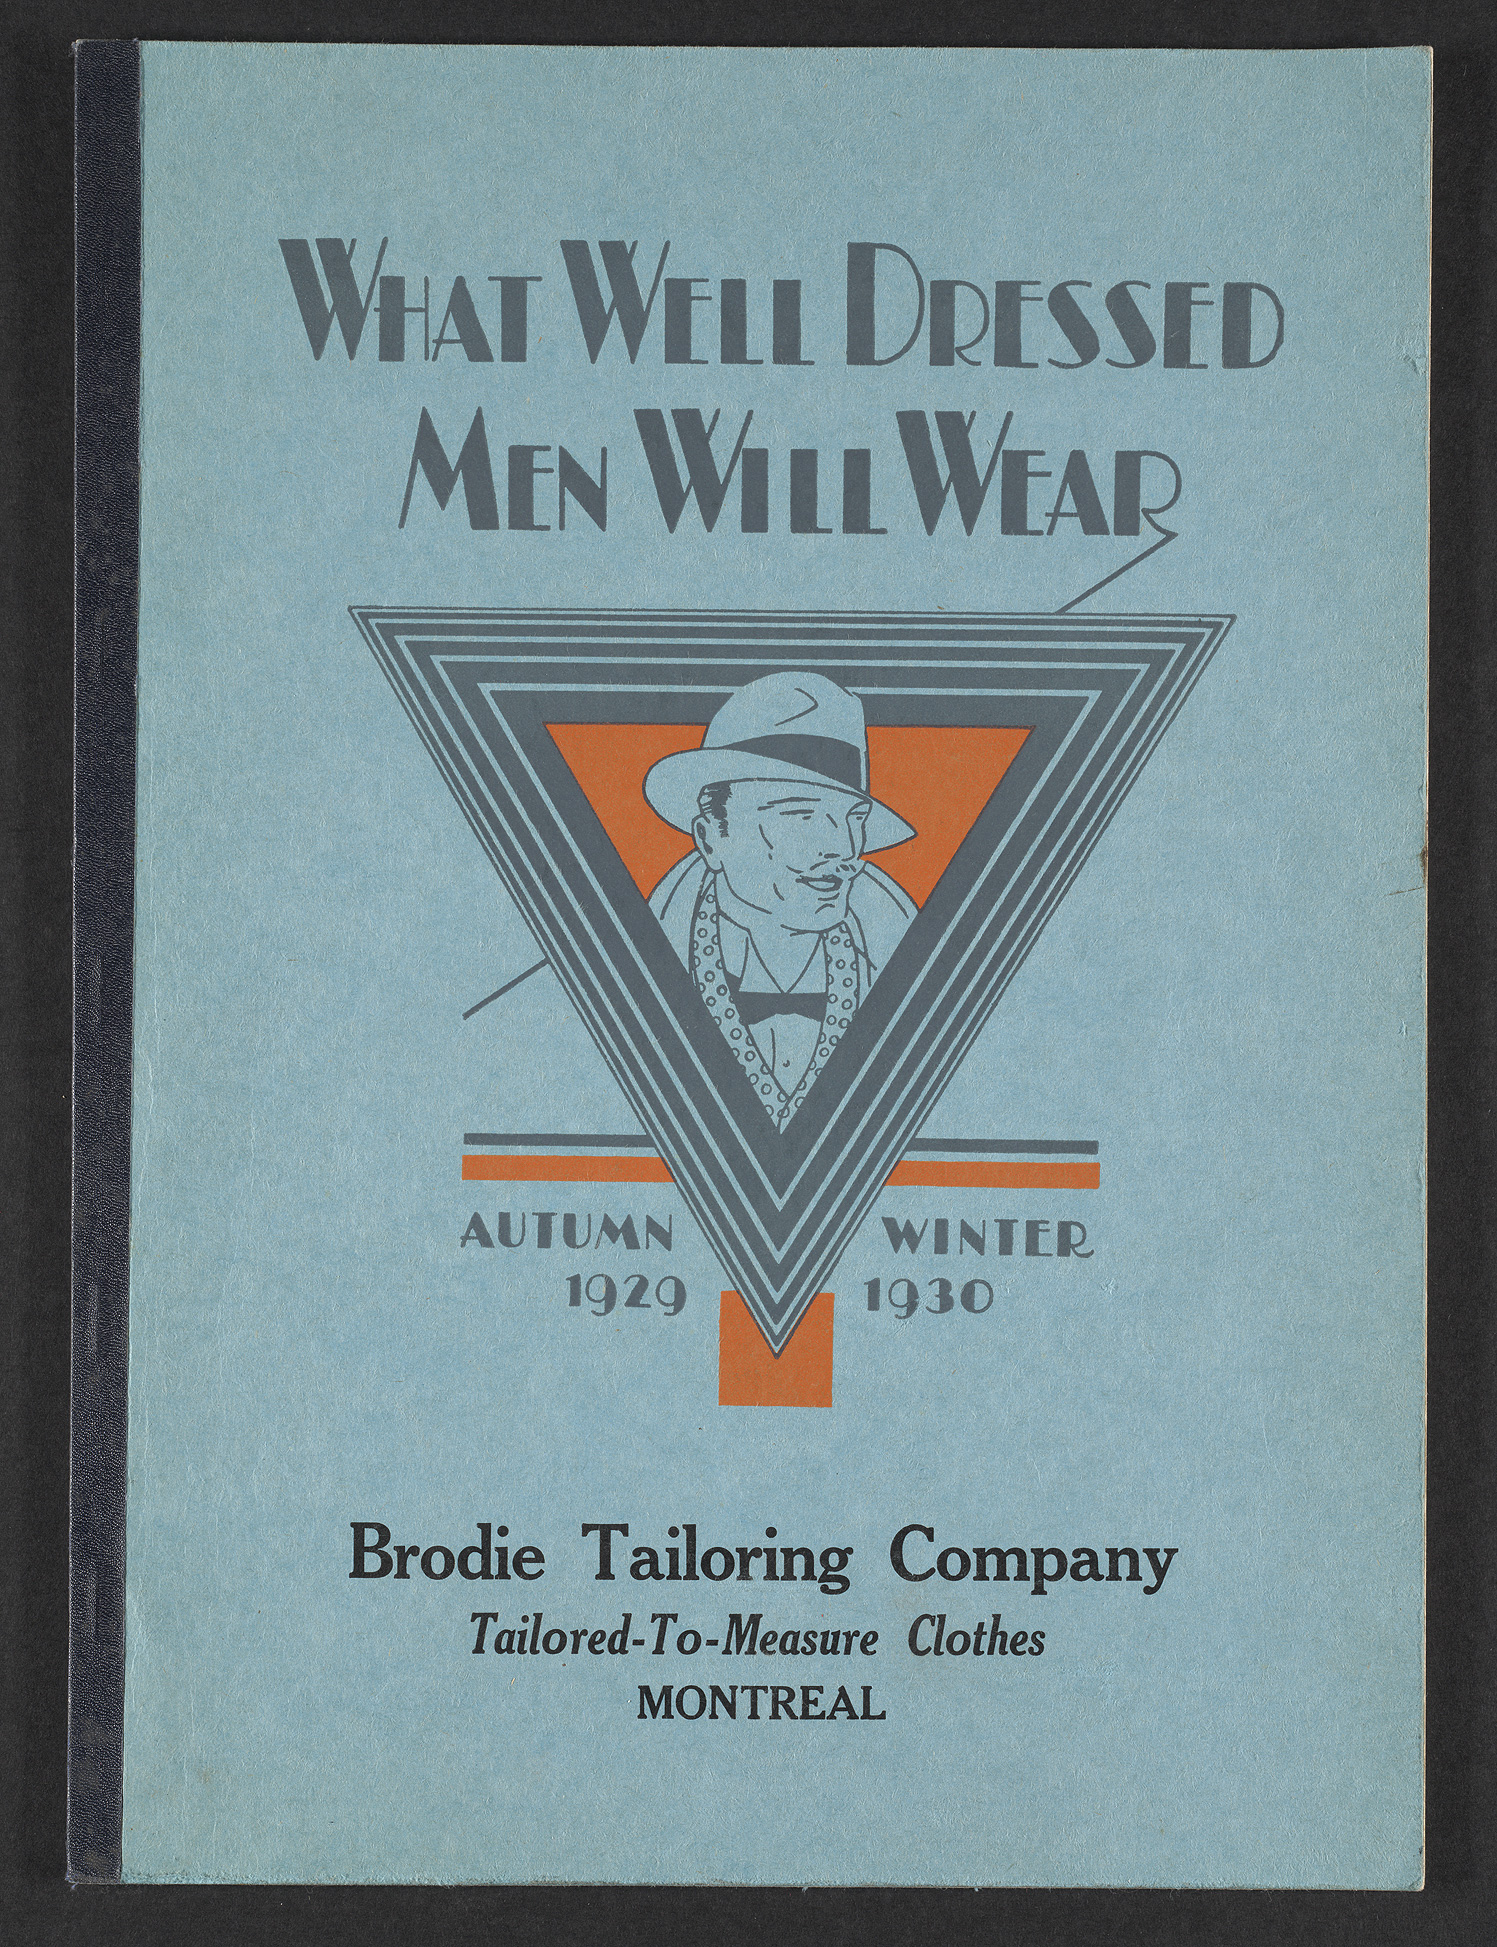 "The cover of the Brodie Tailoring Company's catalogue featuring ""tailored-to-measure"" clothes entitled What Well Dressed Men Will Wear. Creator: Brodie Tailoring Company Date: 1929 Commercial and Industrial Catalogue Collection. Rare Books and Special Collections, McGill Library."